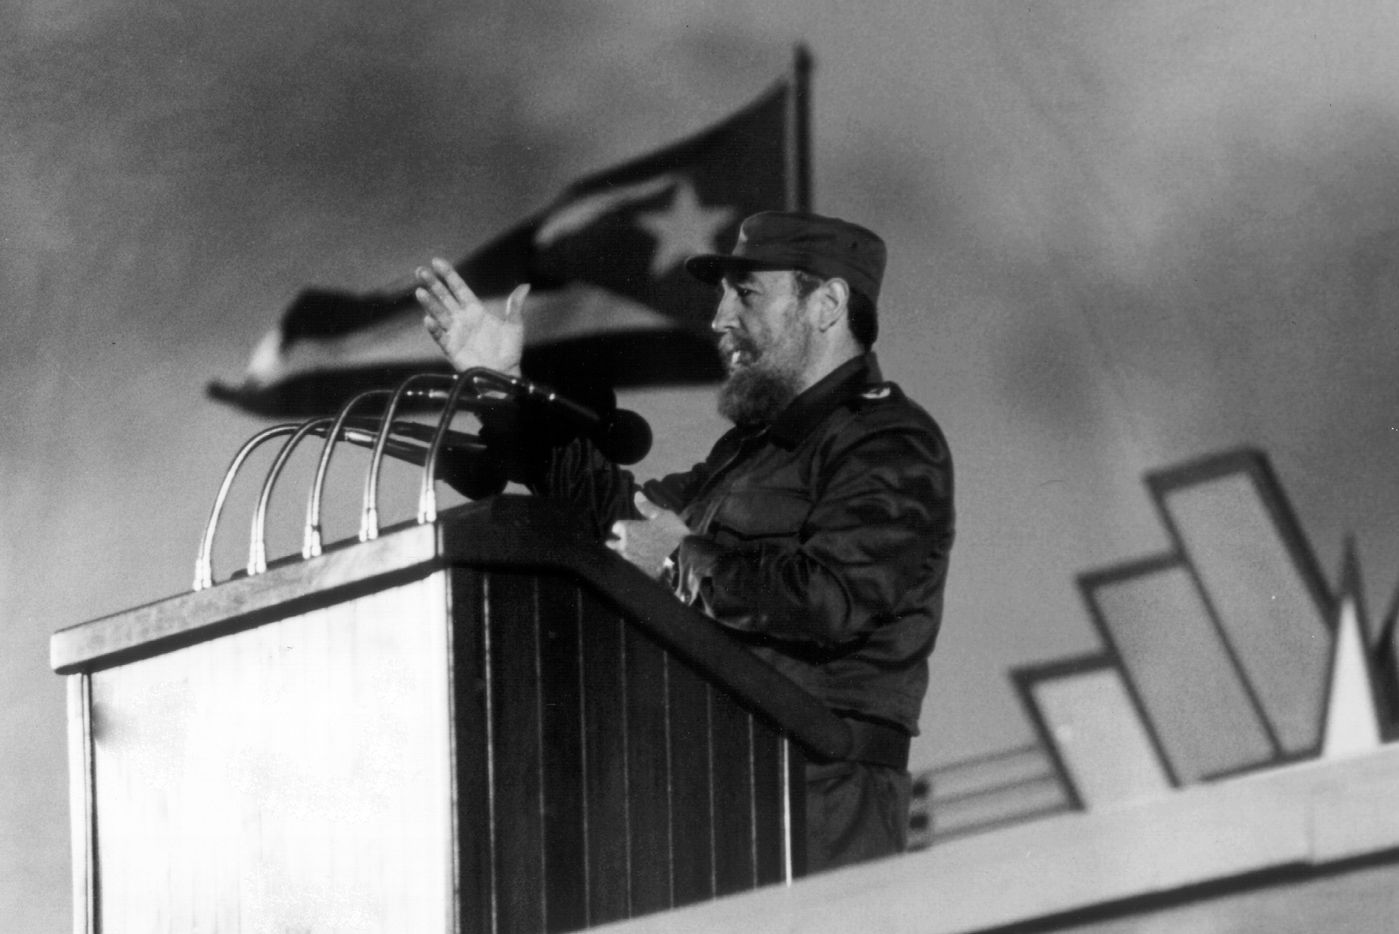 Cuban president Fidel Castro delivering a speech during the 30th Anniversary of the Cuban Revolution.